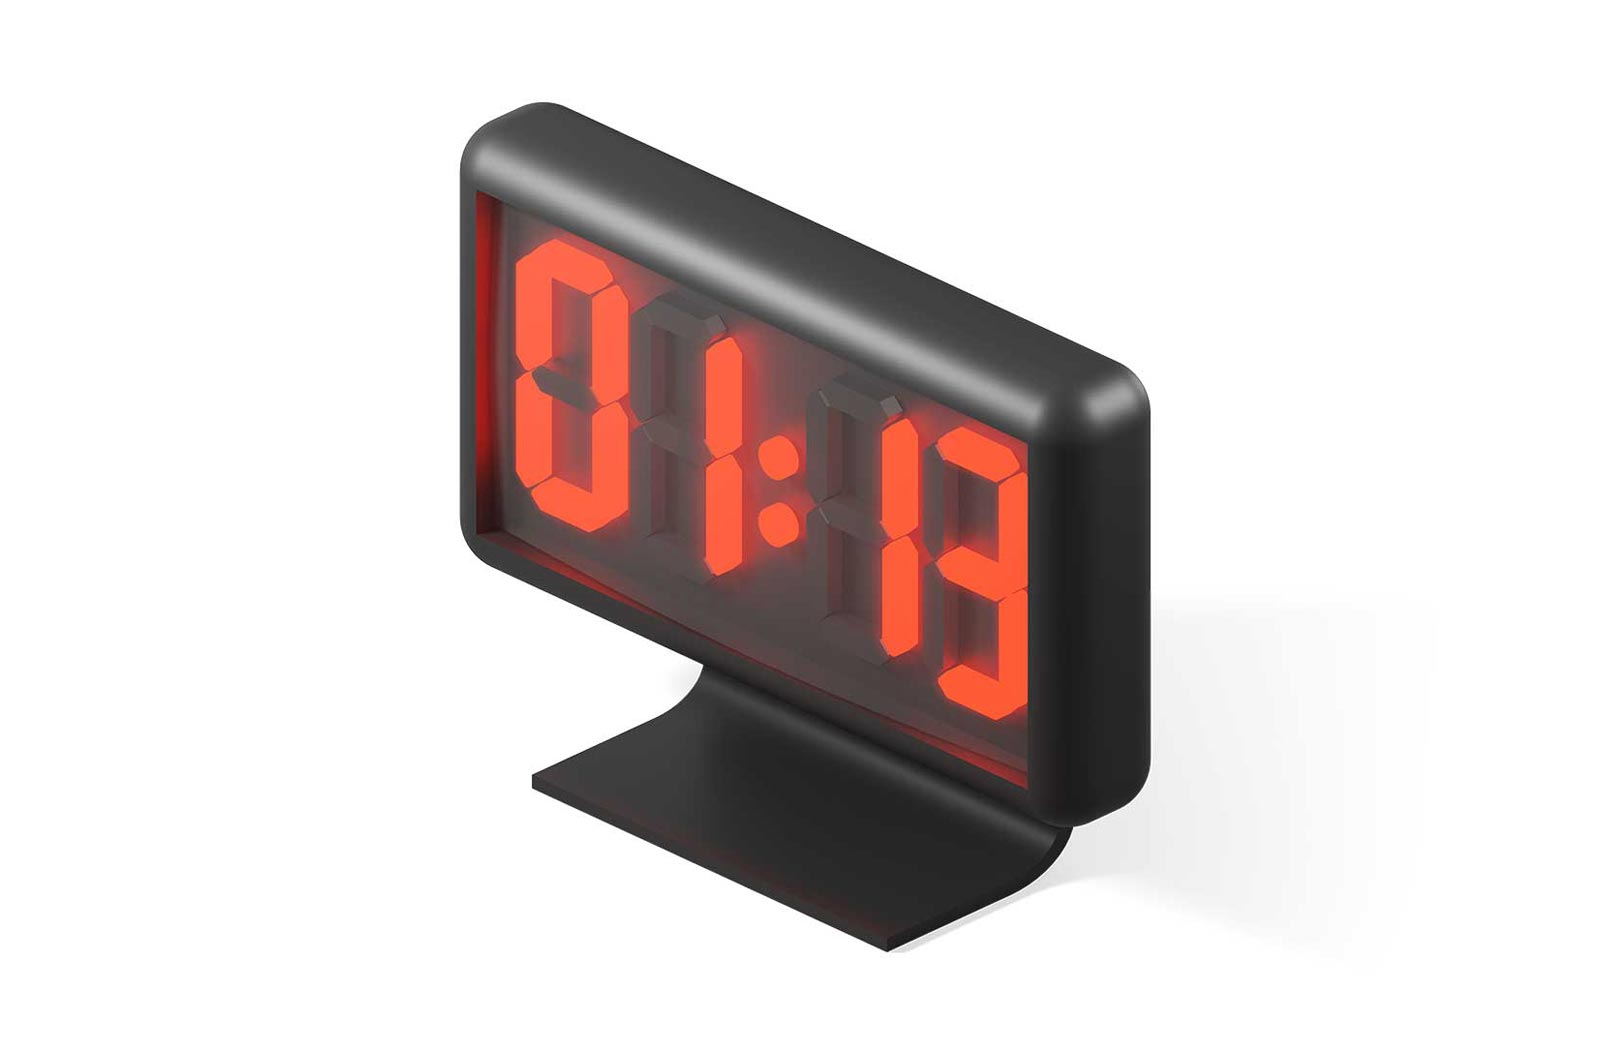 Black digital watch face with red numbers 3d rendered illustration. Isometric modern alarm-clock. Clock numbers with bright illuminated led